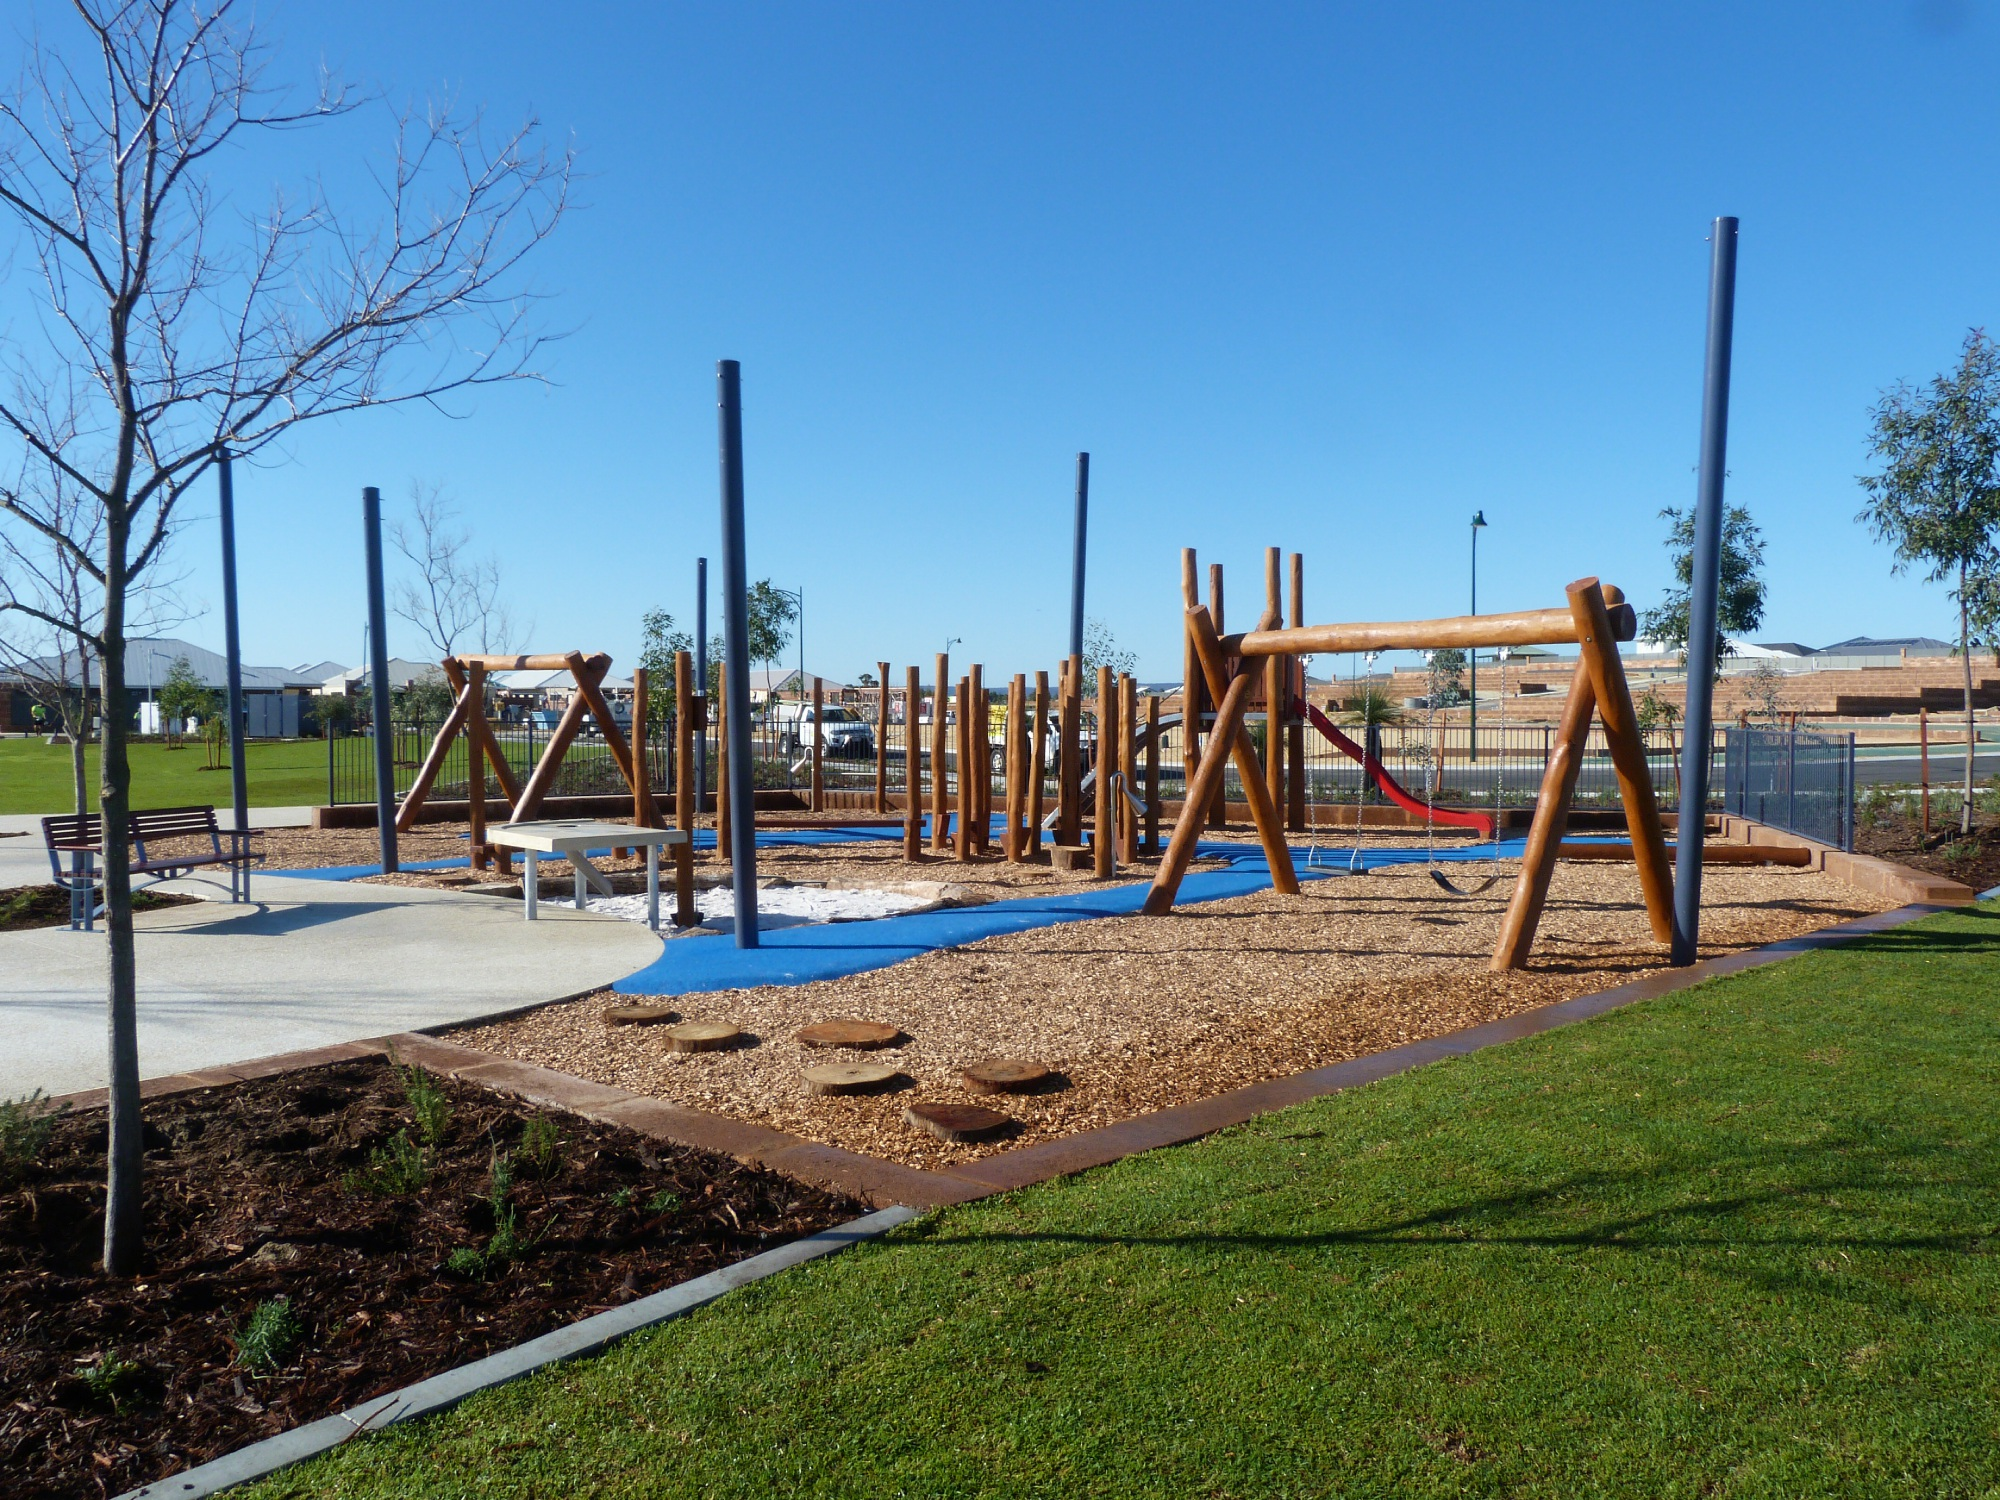 Mason Green Private Estate has a newly completed park with playground, AFL goals, a half-basketball court, seating, shelters and a barbecue for |residents and players.